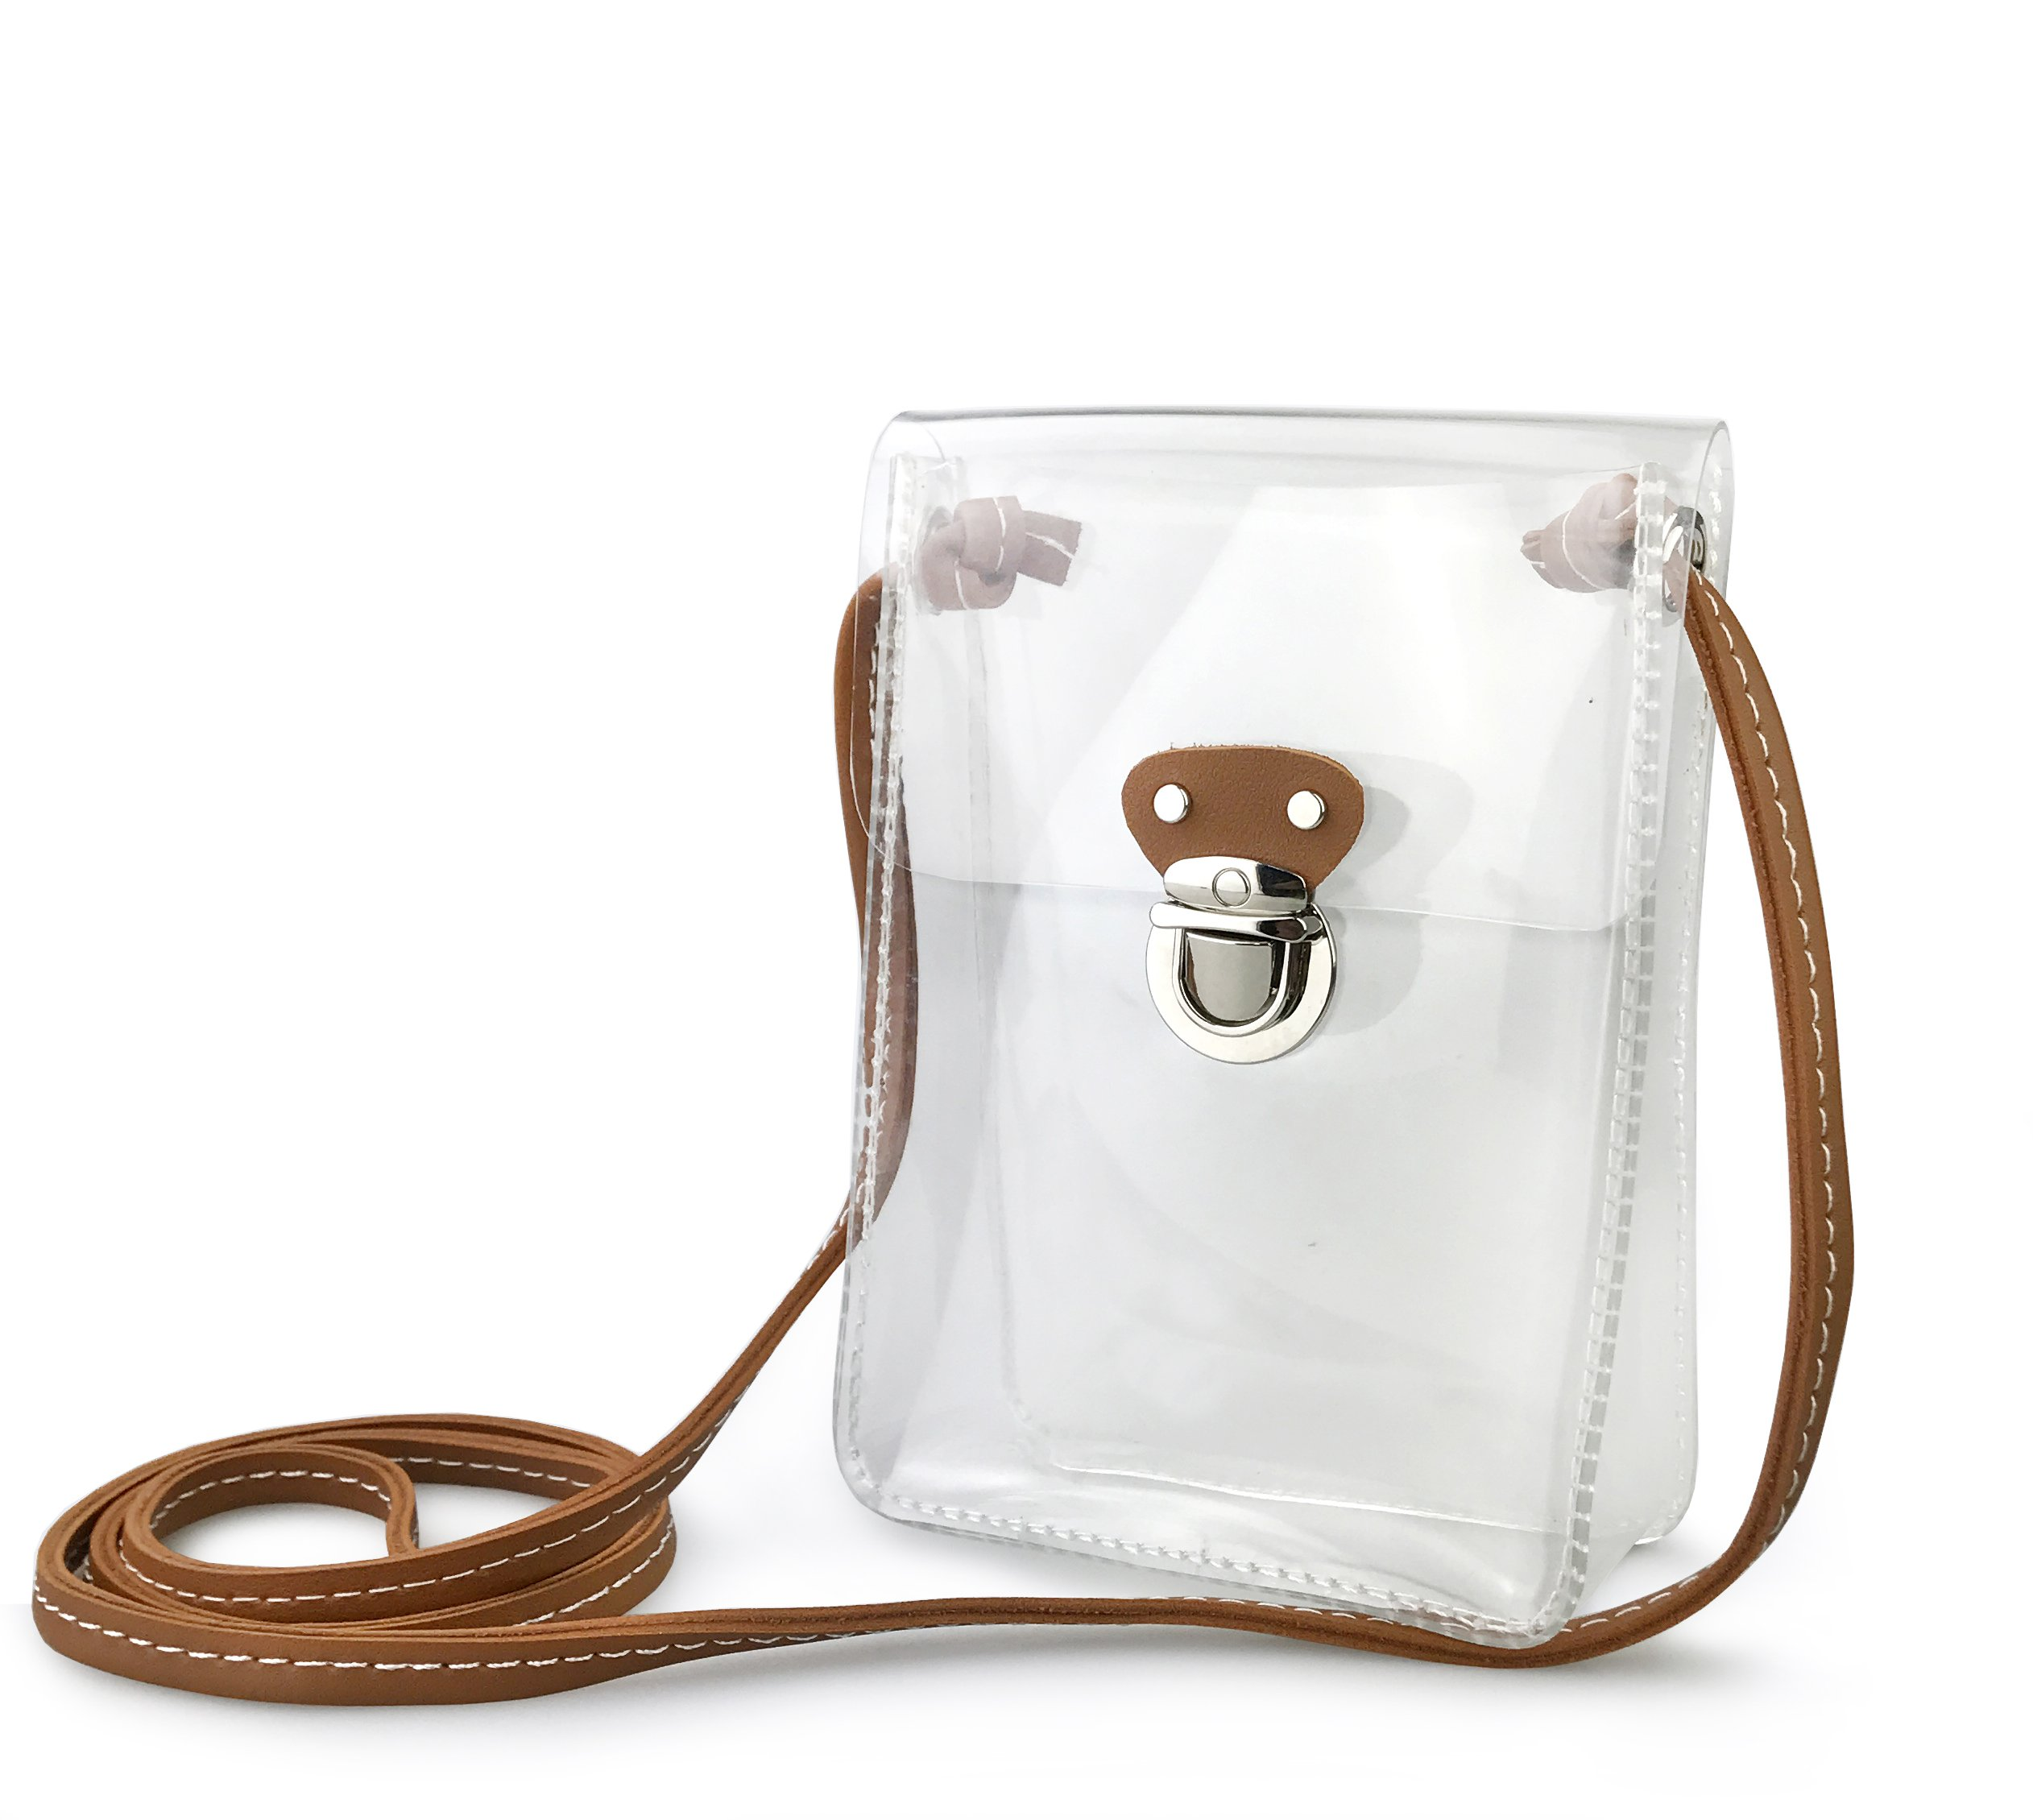 Clear Mini Cross Body Single Shoulder Bag for Stadium Approved (Clear)